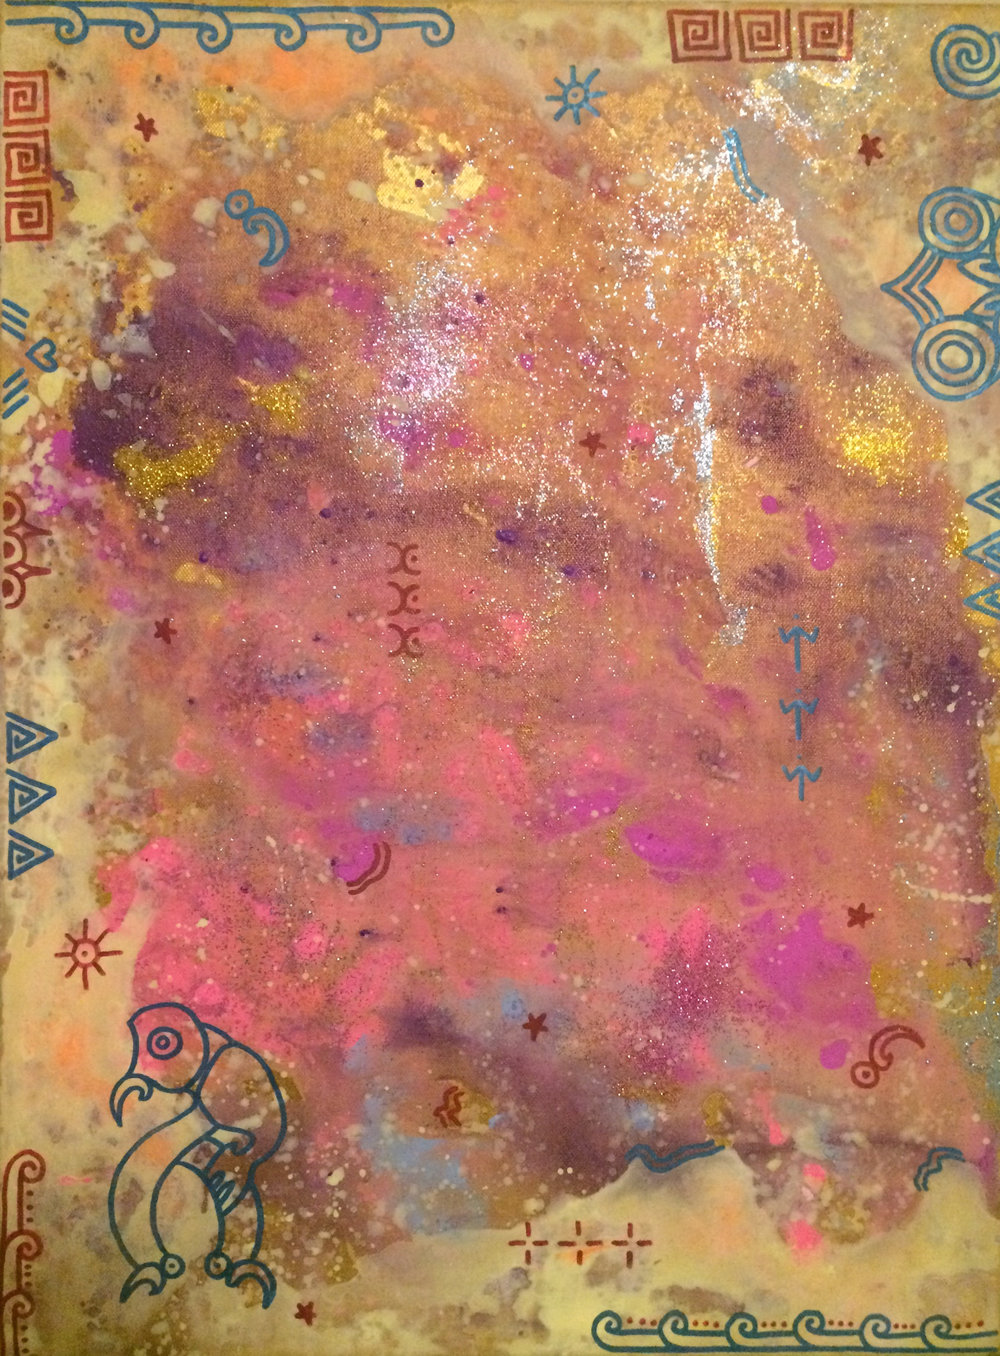 'Ancestor dreaming'  by Taryn Beri. Click   here   to learn more about this original artwork.